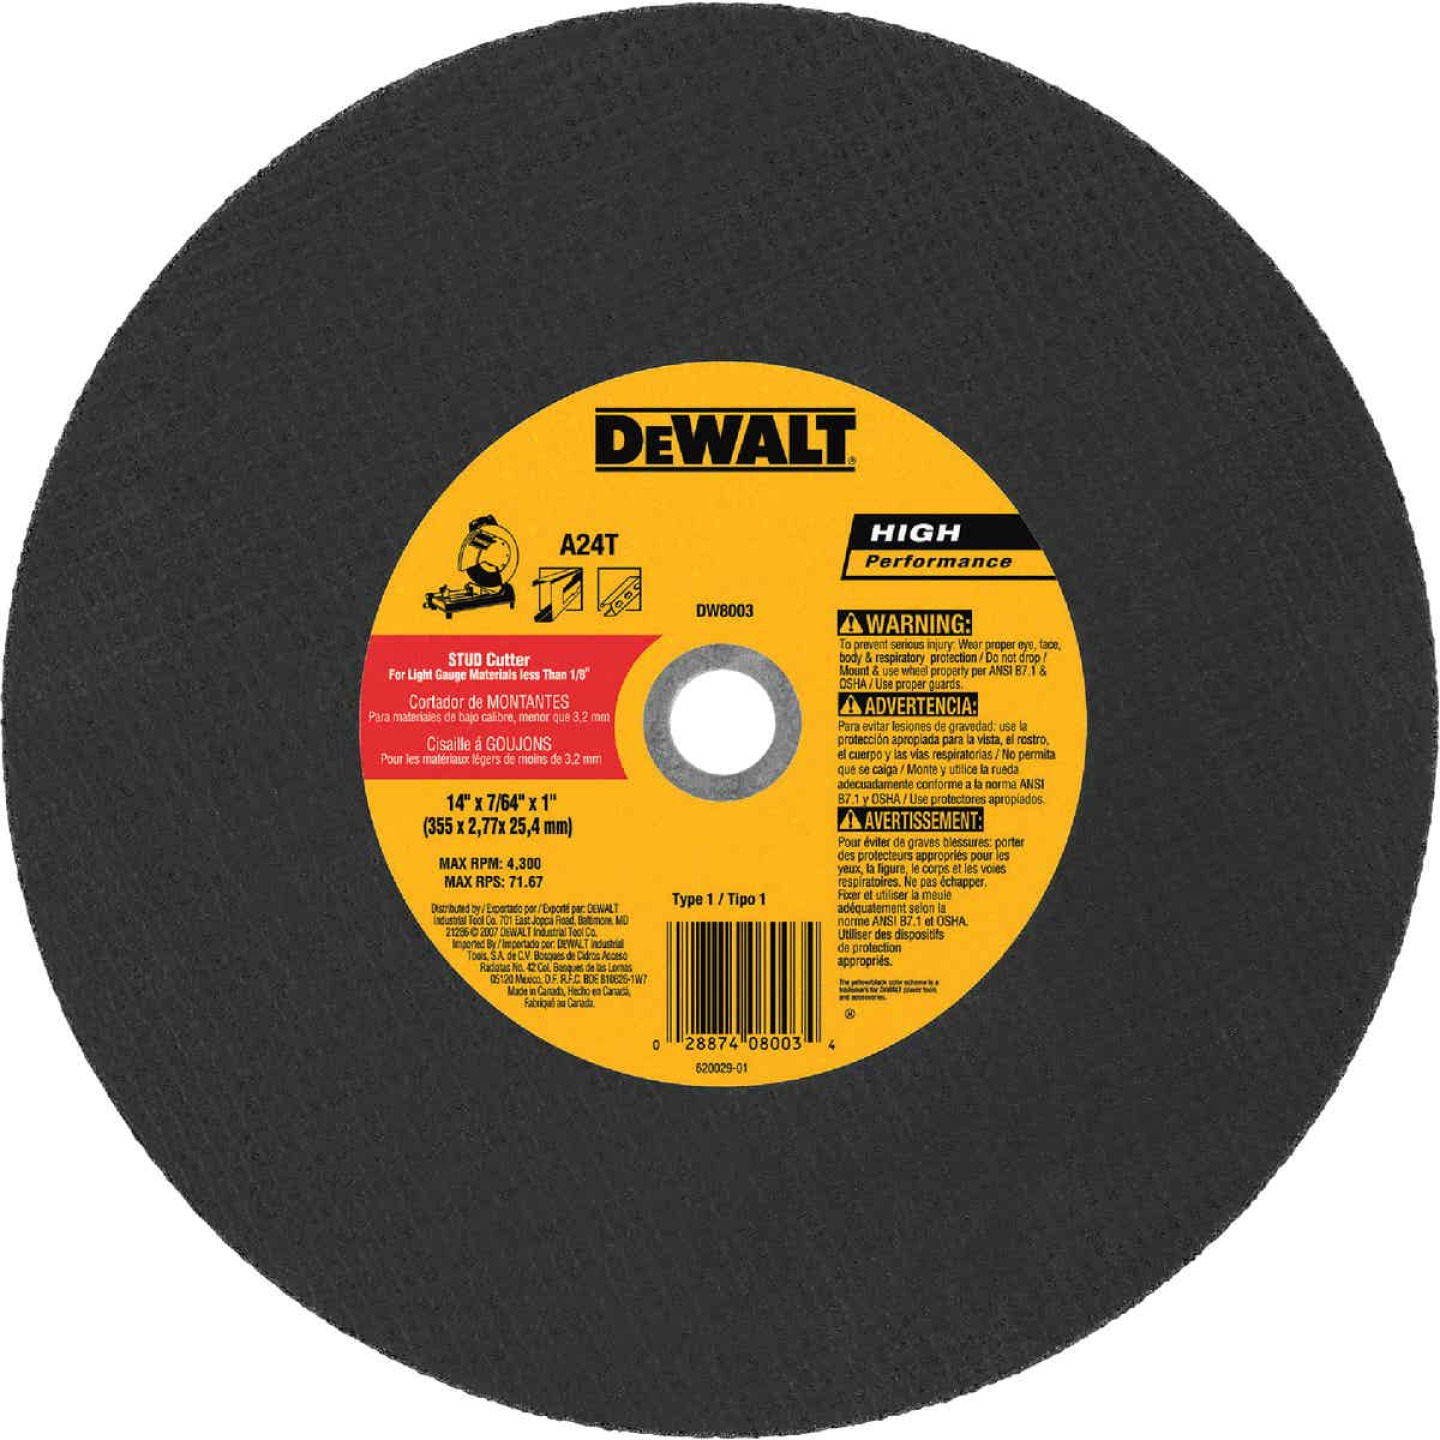 DeWalt HP Type 1 14 In. x 7/64 In. x 1 In. Metal Studs Cut-Off Wheel Image 1